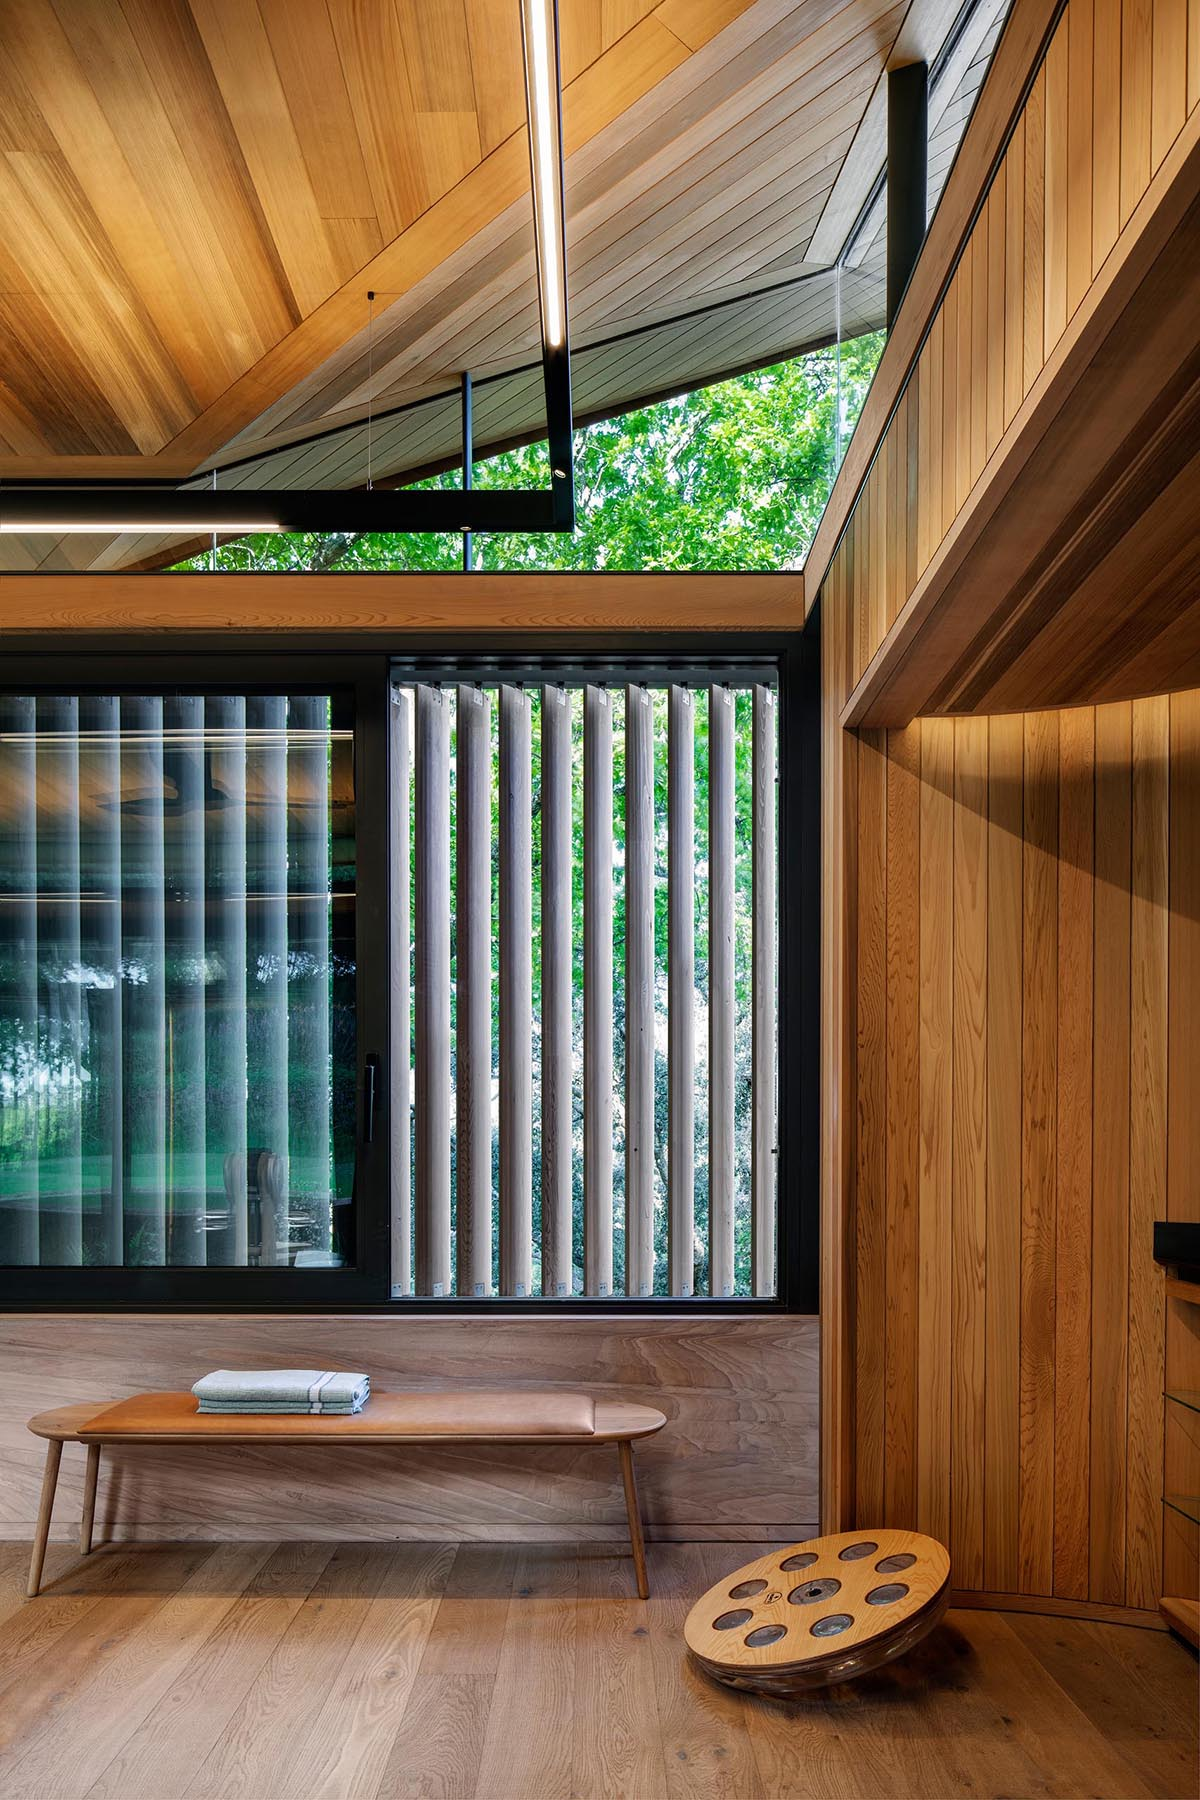 A home gym with aero-foil timber screens that provide privacy when needed.